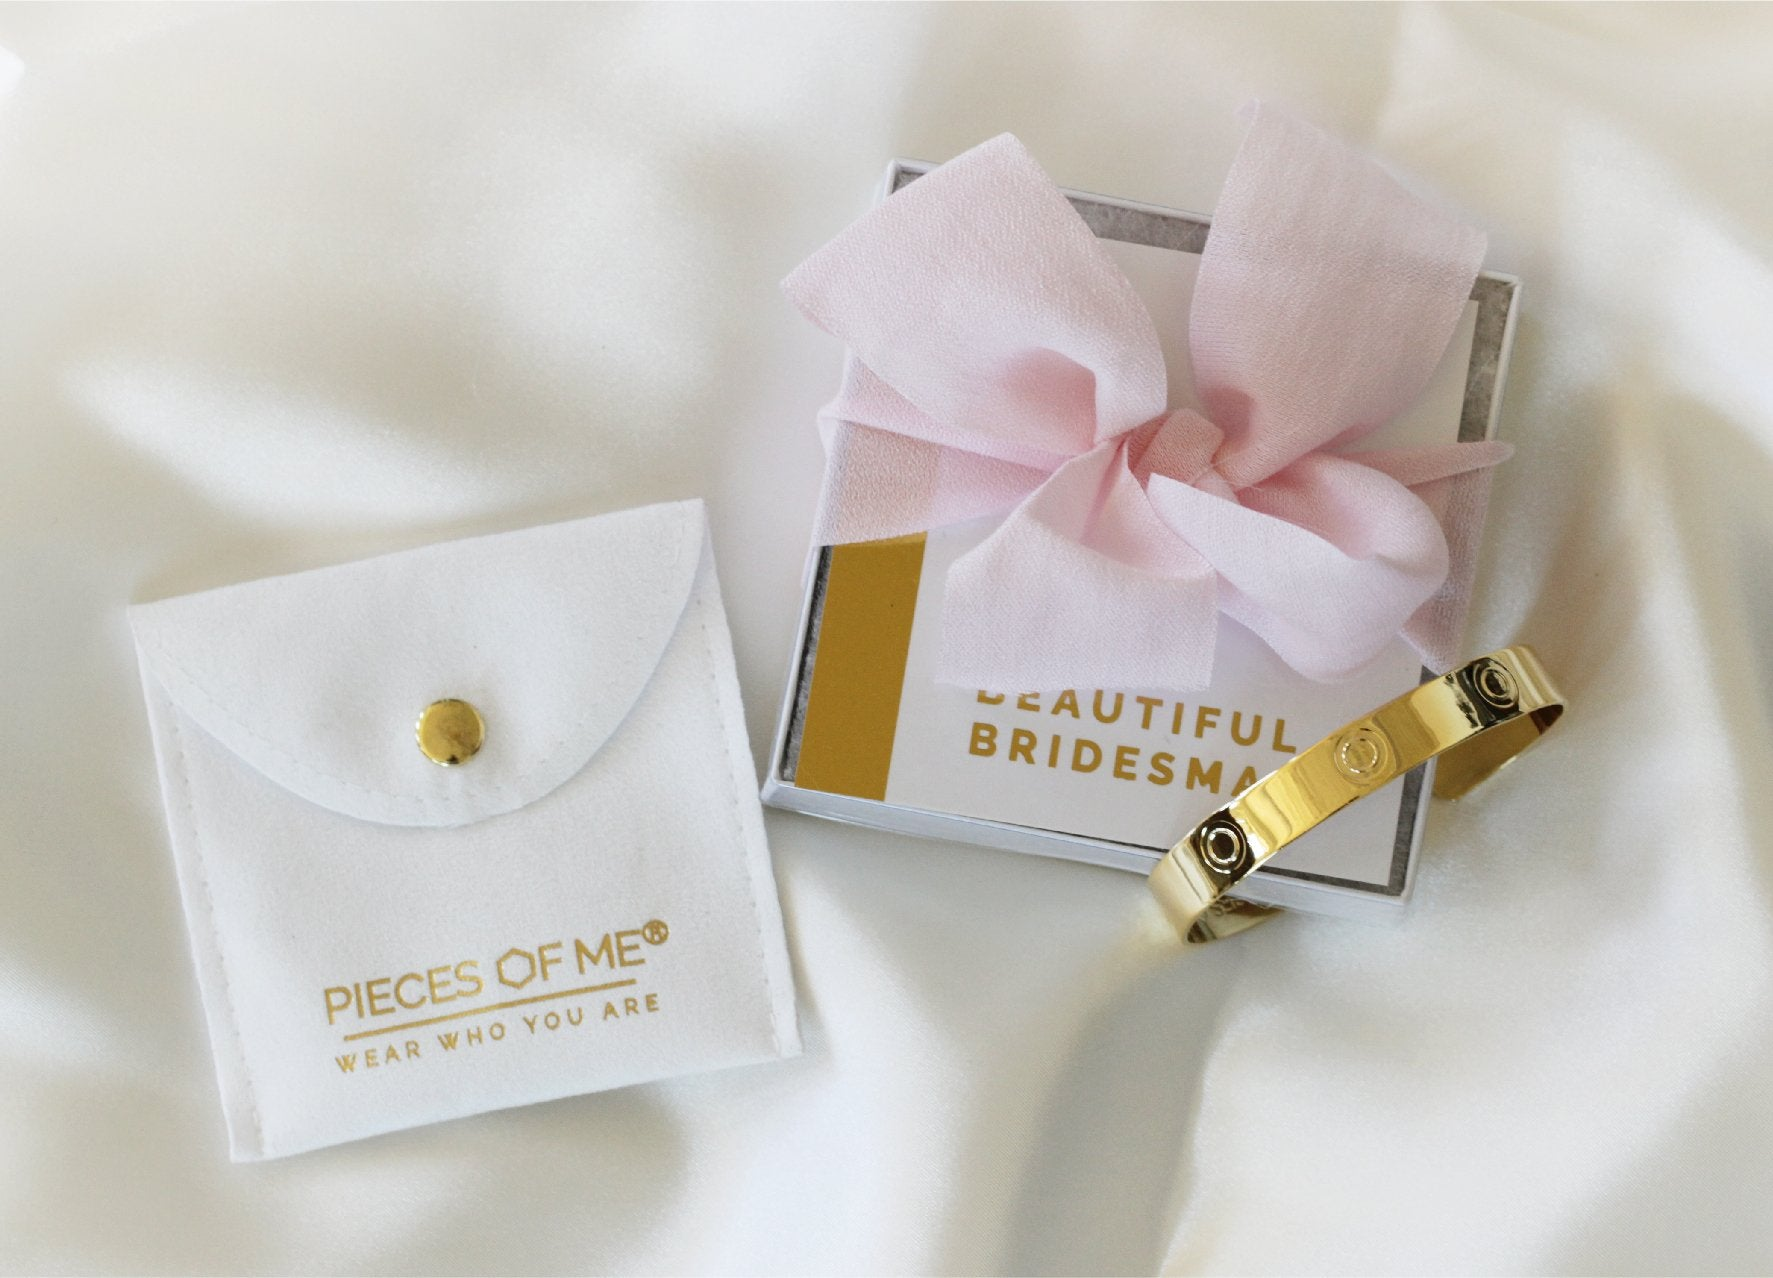 Bridesmaid's Gifts- Cuff Bracelets